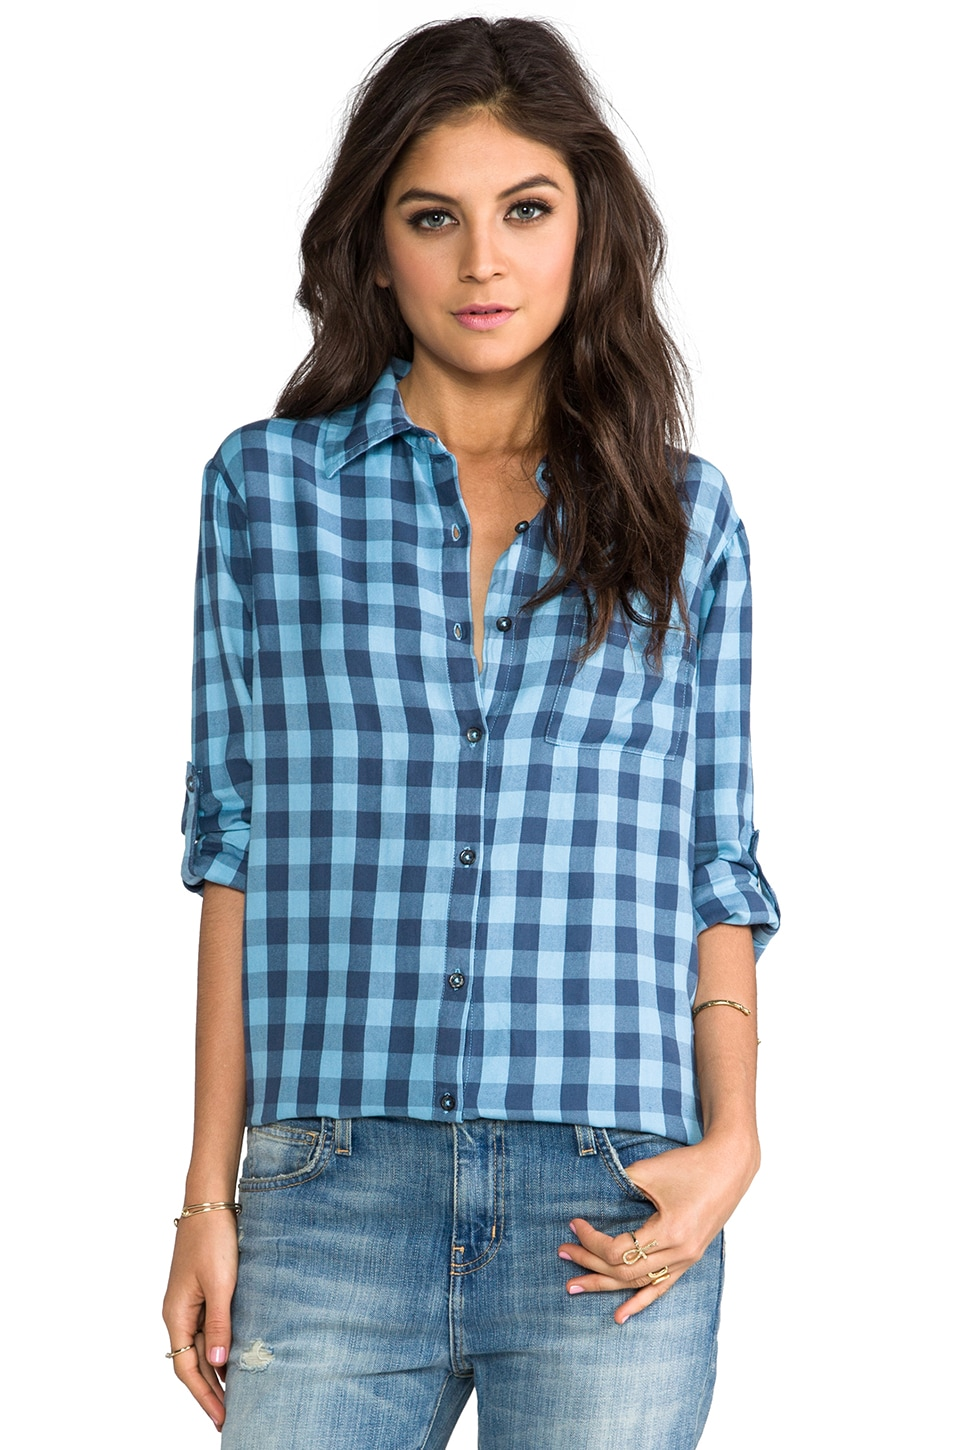 SUNDRY Button Up Flannel Shirt in Aqua